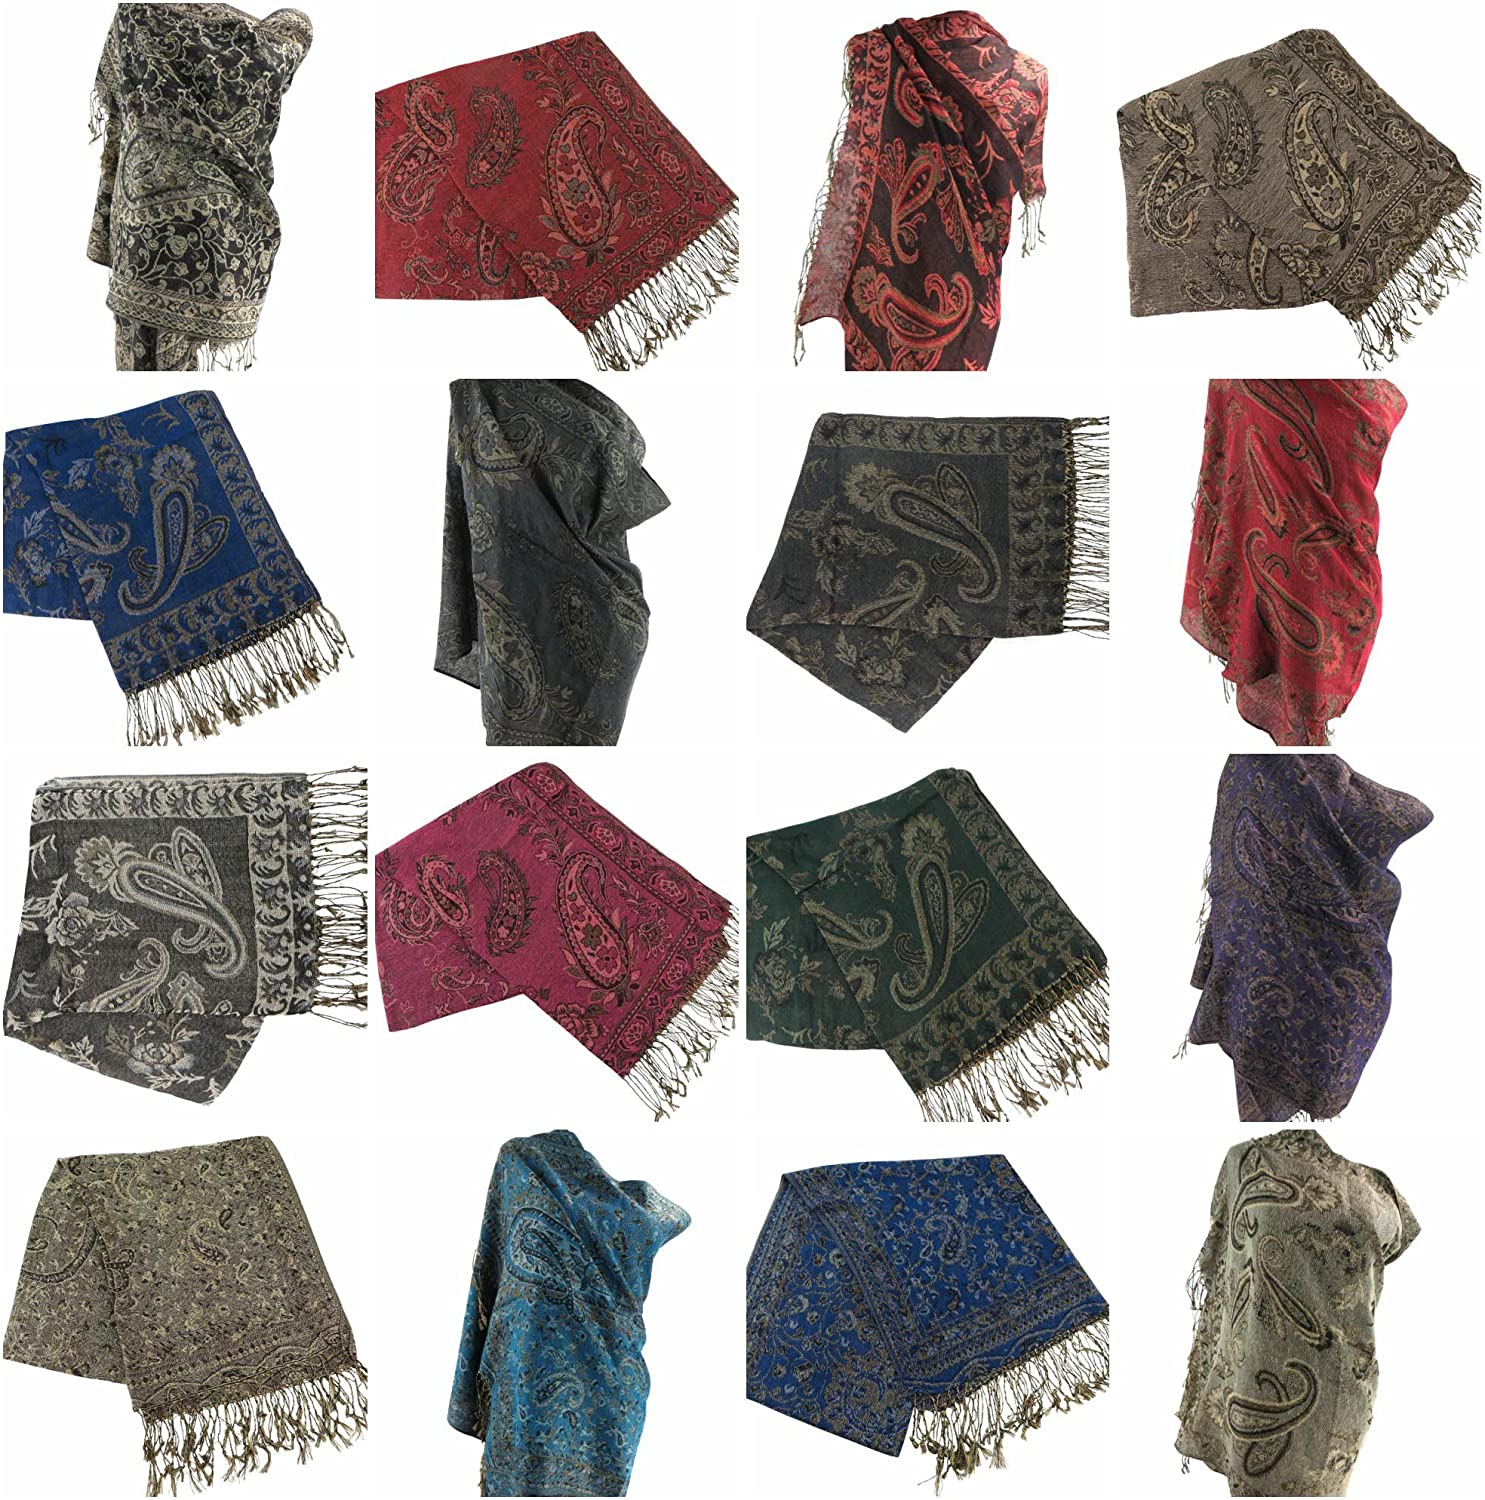 12 scarves floral paisley pashmina shawl wrap stole Scarf for Sale Evening shawl